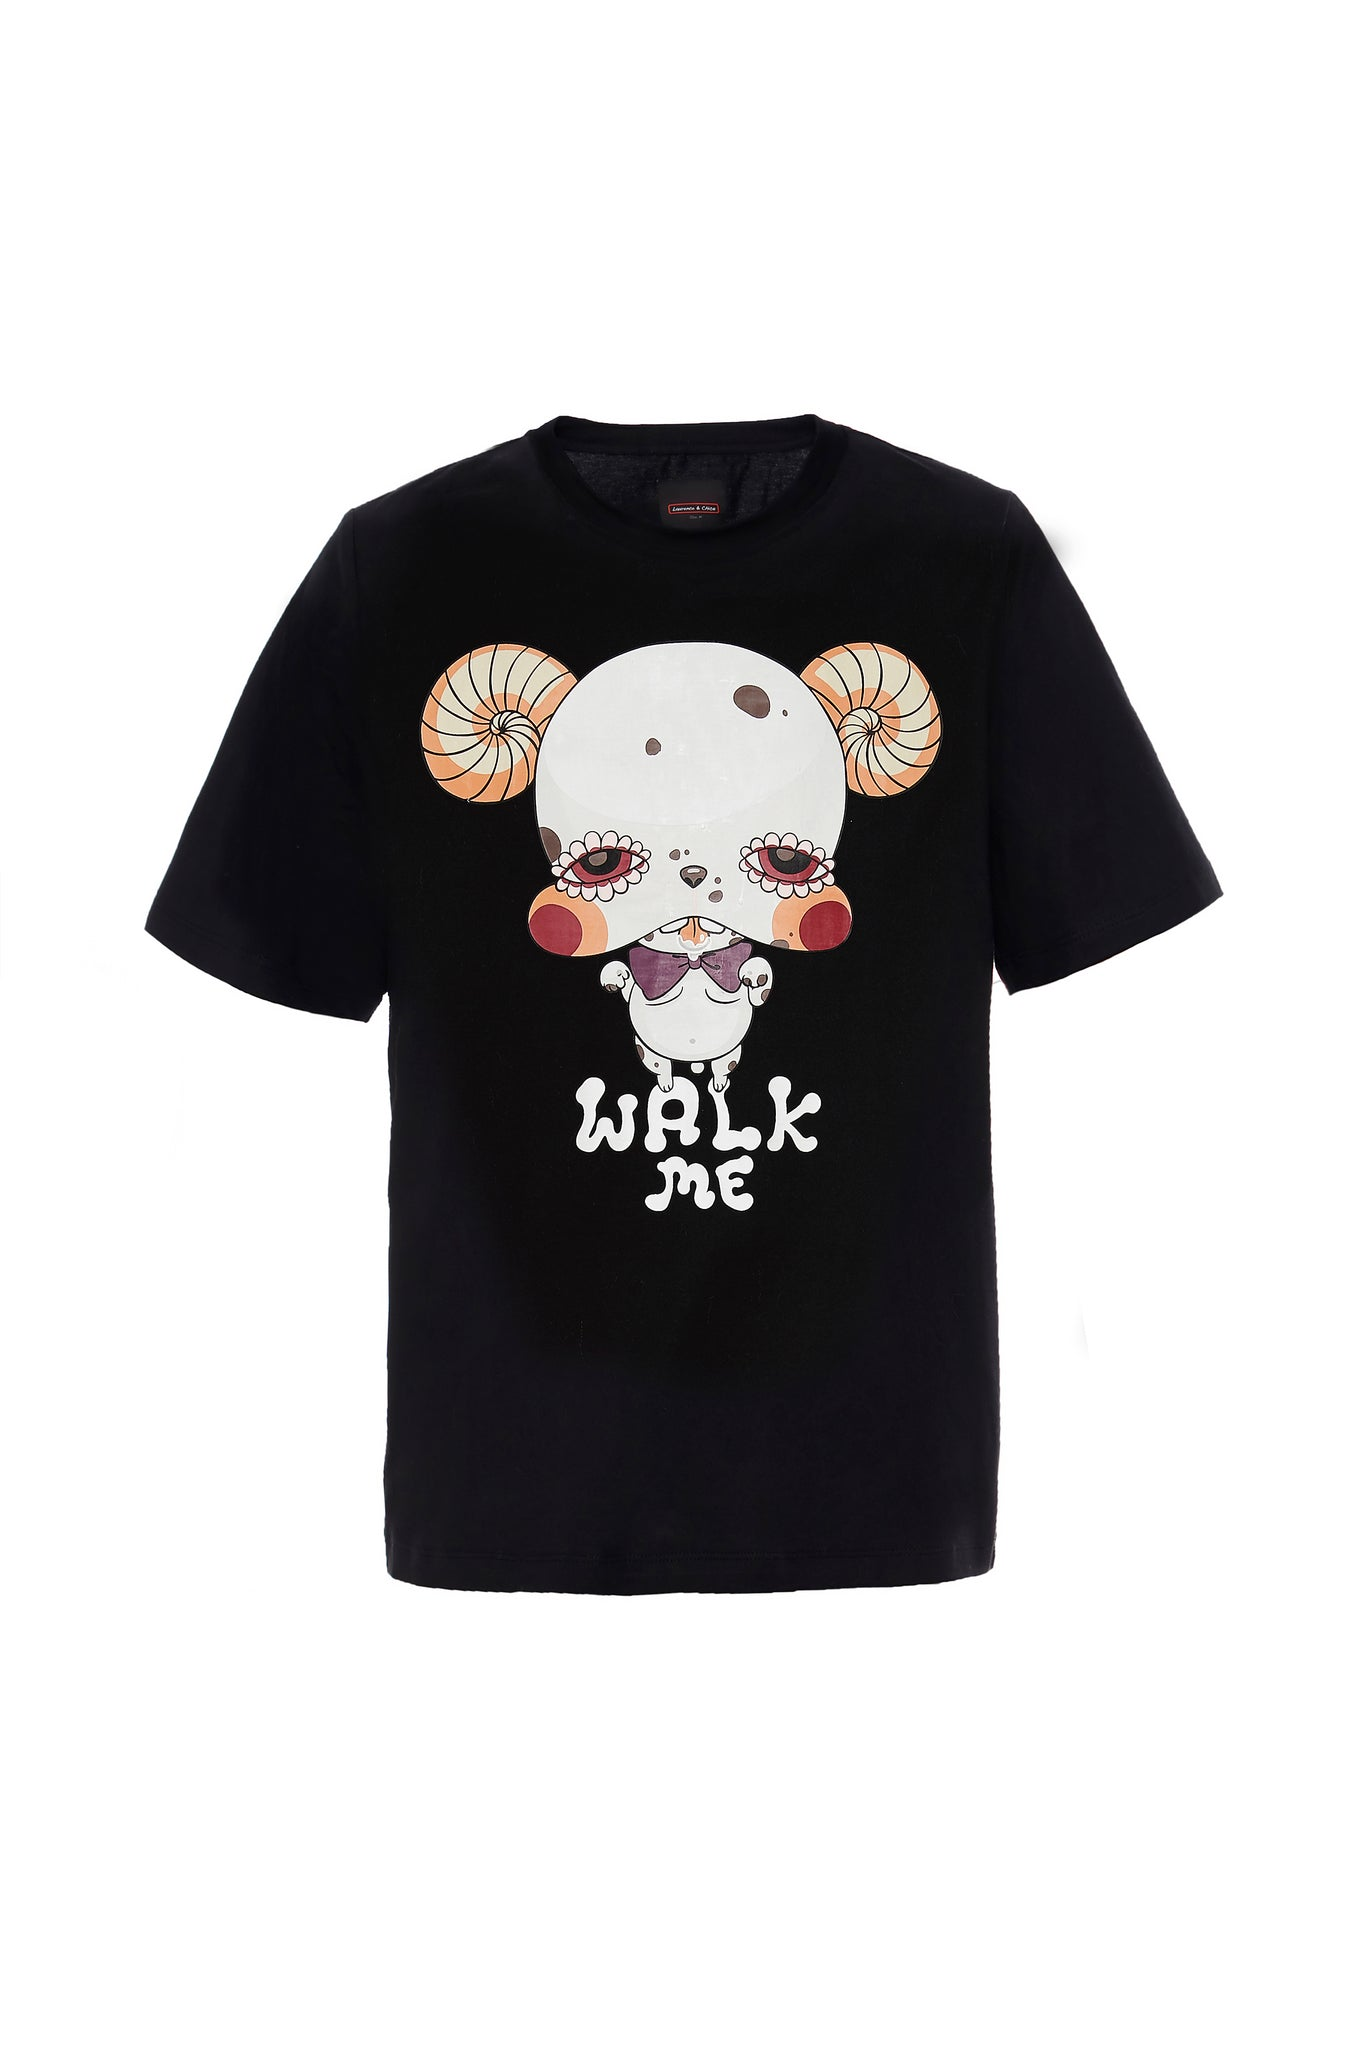 Black Bulldog Tee